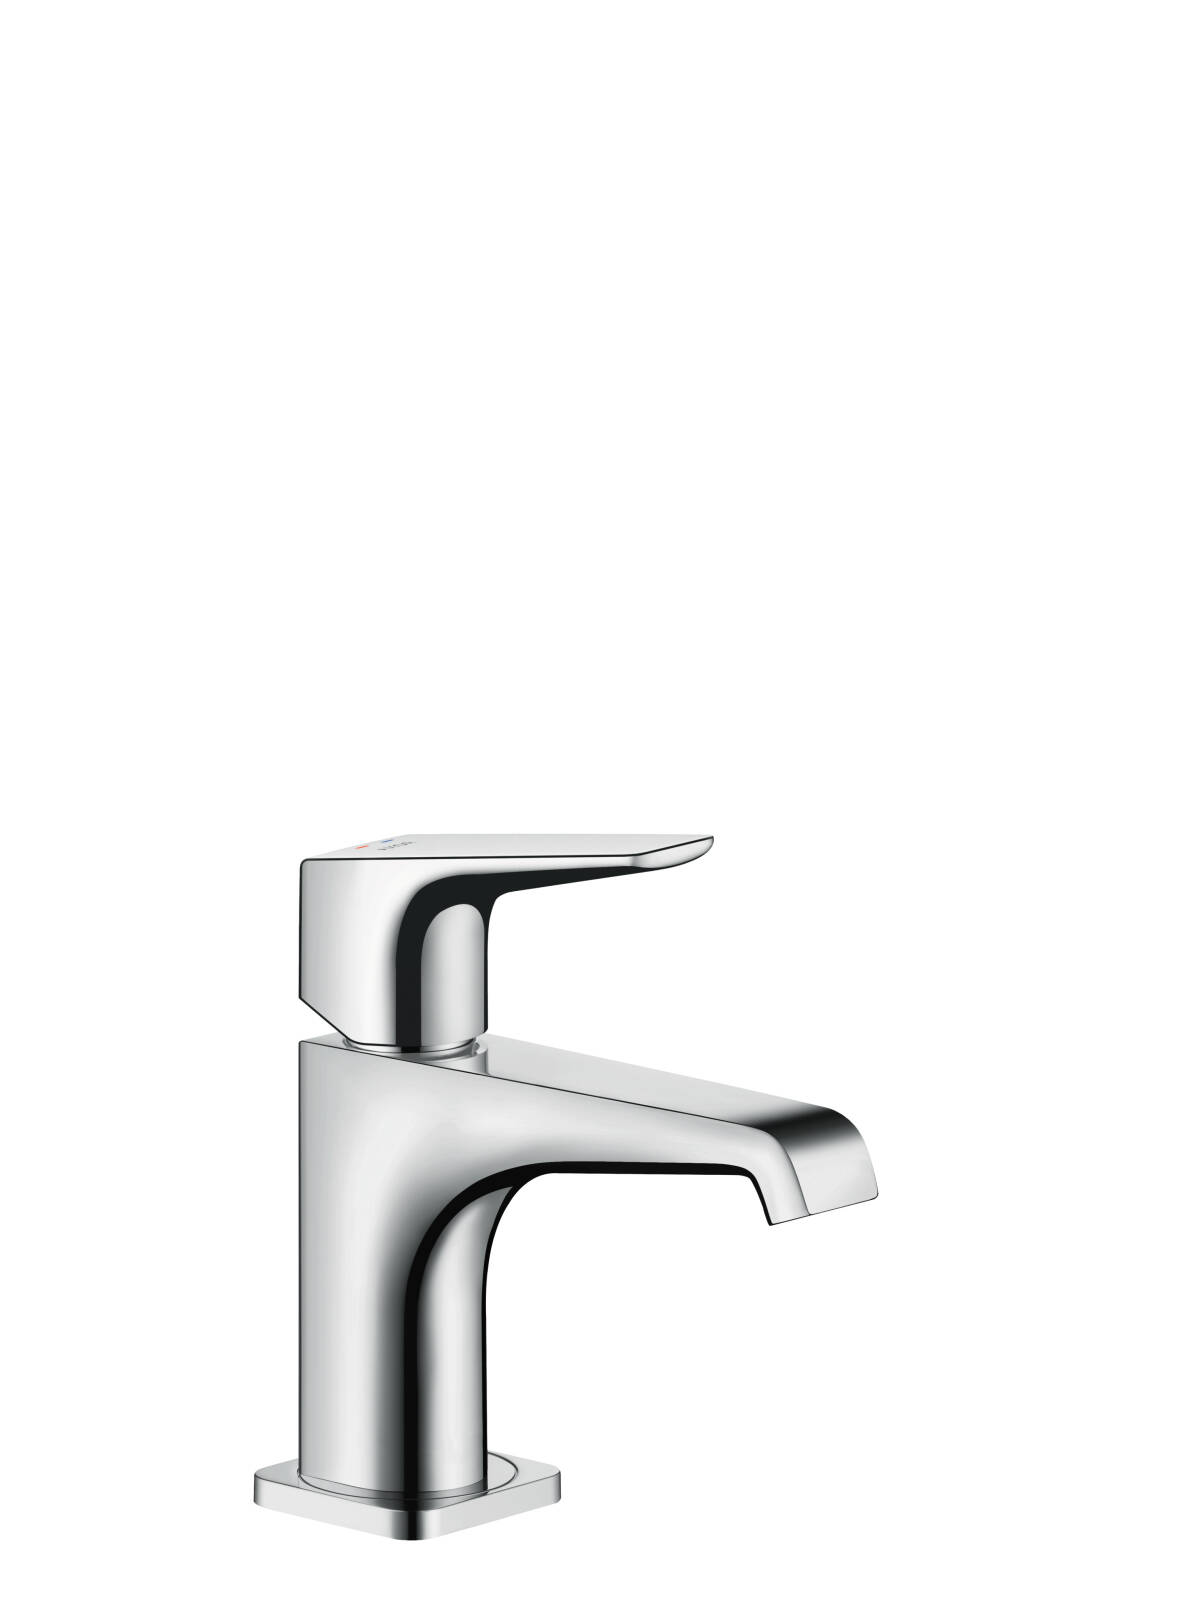 Single lever basin mixer 90 with lever handle for hand washbasins with waste set, Polished Bronze, 36112130